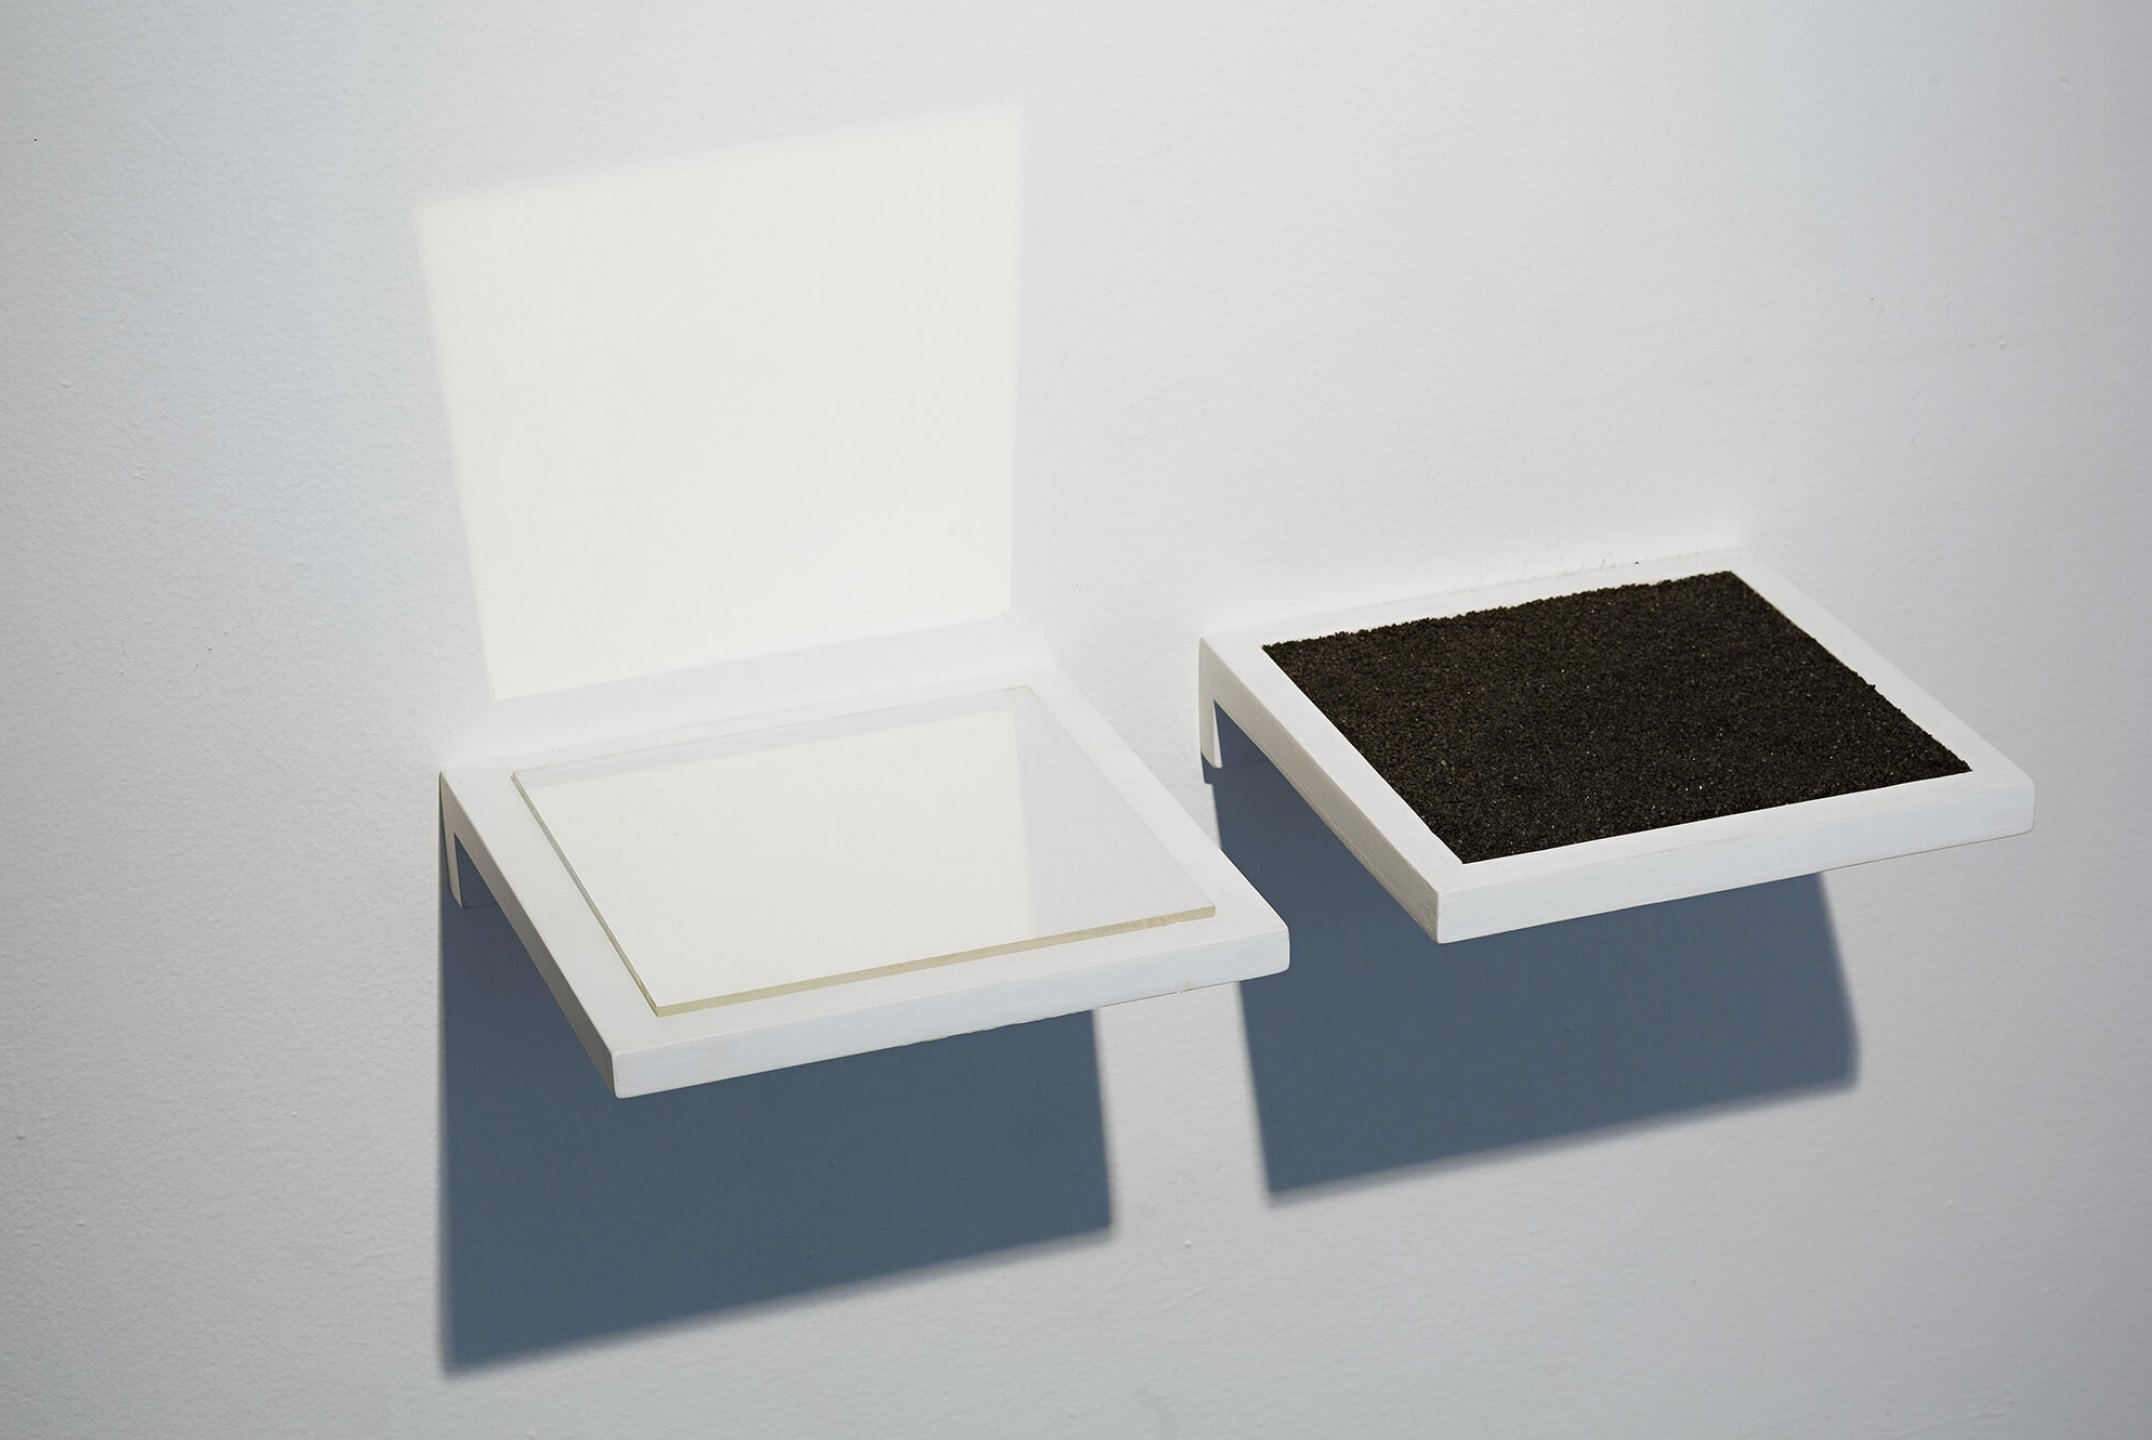 Paloma Bosquê, <em>In/Out, </em>2014, wooden tray, reflexive glass and black sand, 69 × 37 cm - Mendes Wood DM